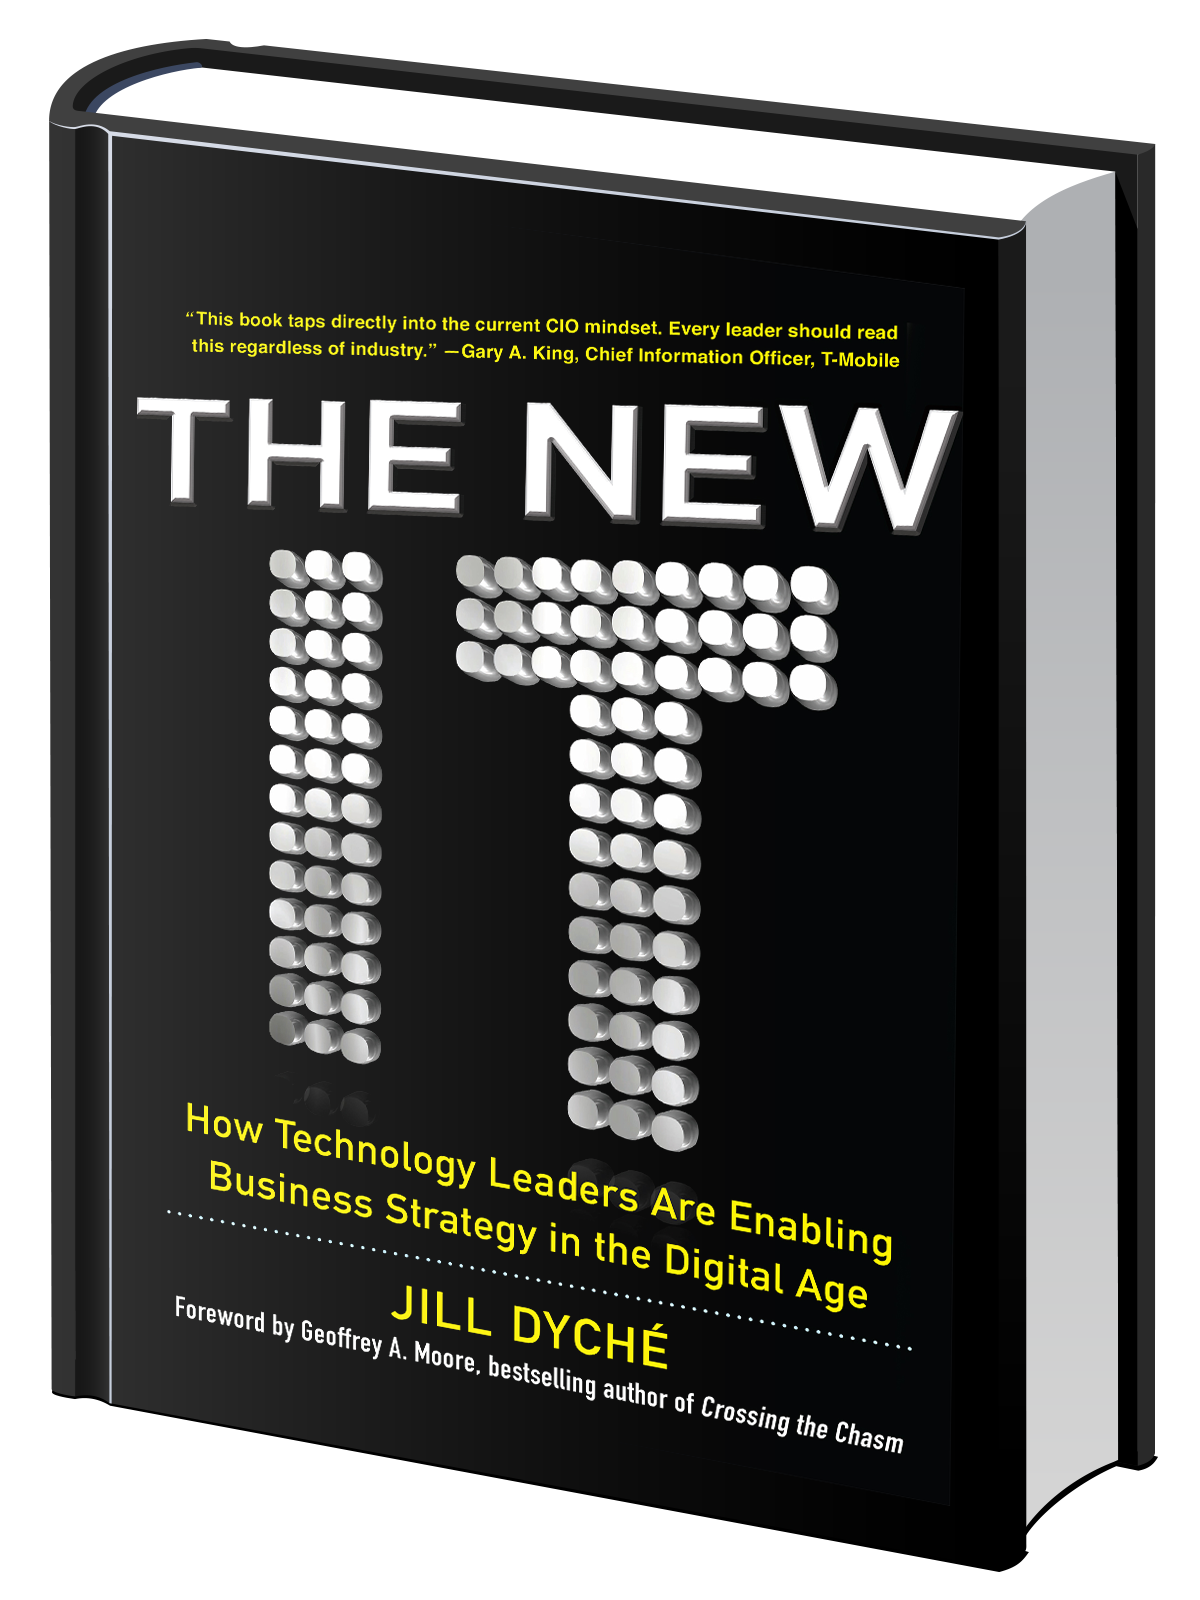 The New IT by Jill Dyche